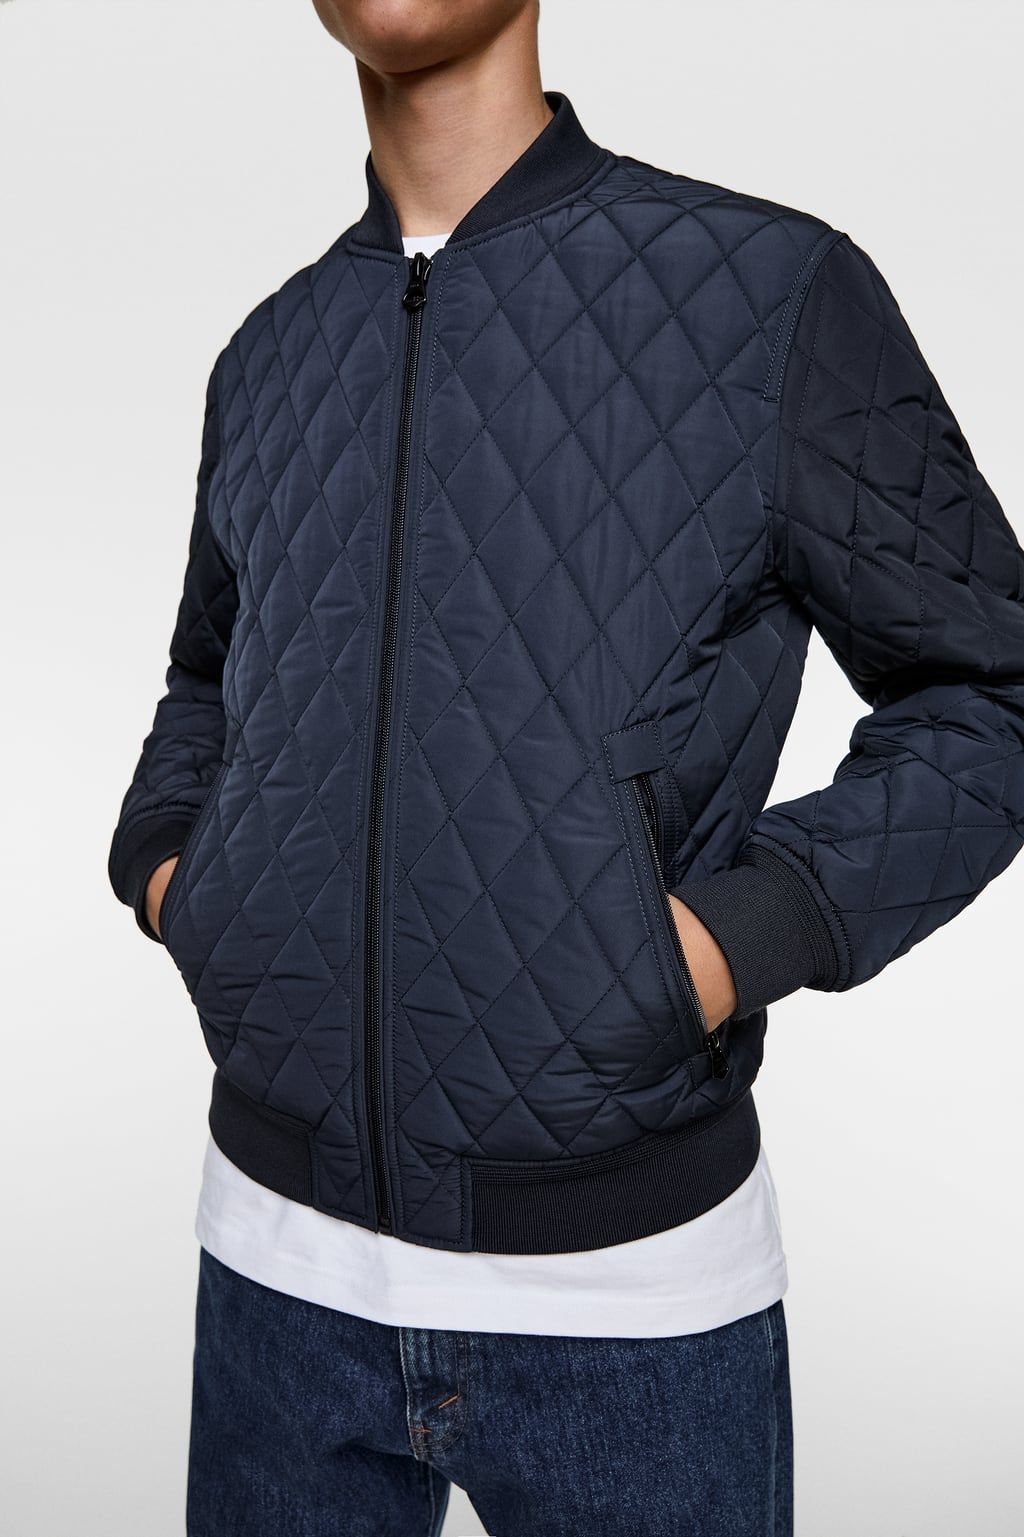 Image 4 Of Diamond Quilted Jacket From Zara Quilted Jacket Jackets Quilted Bomber [ 1537 x 1024 Pixel ]